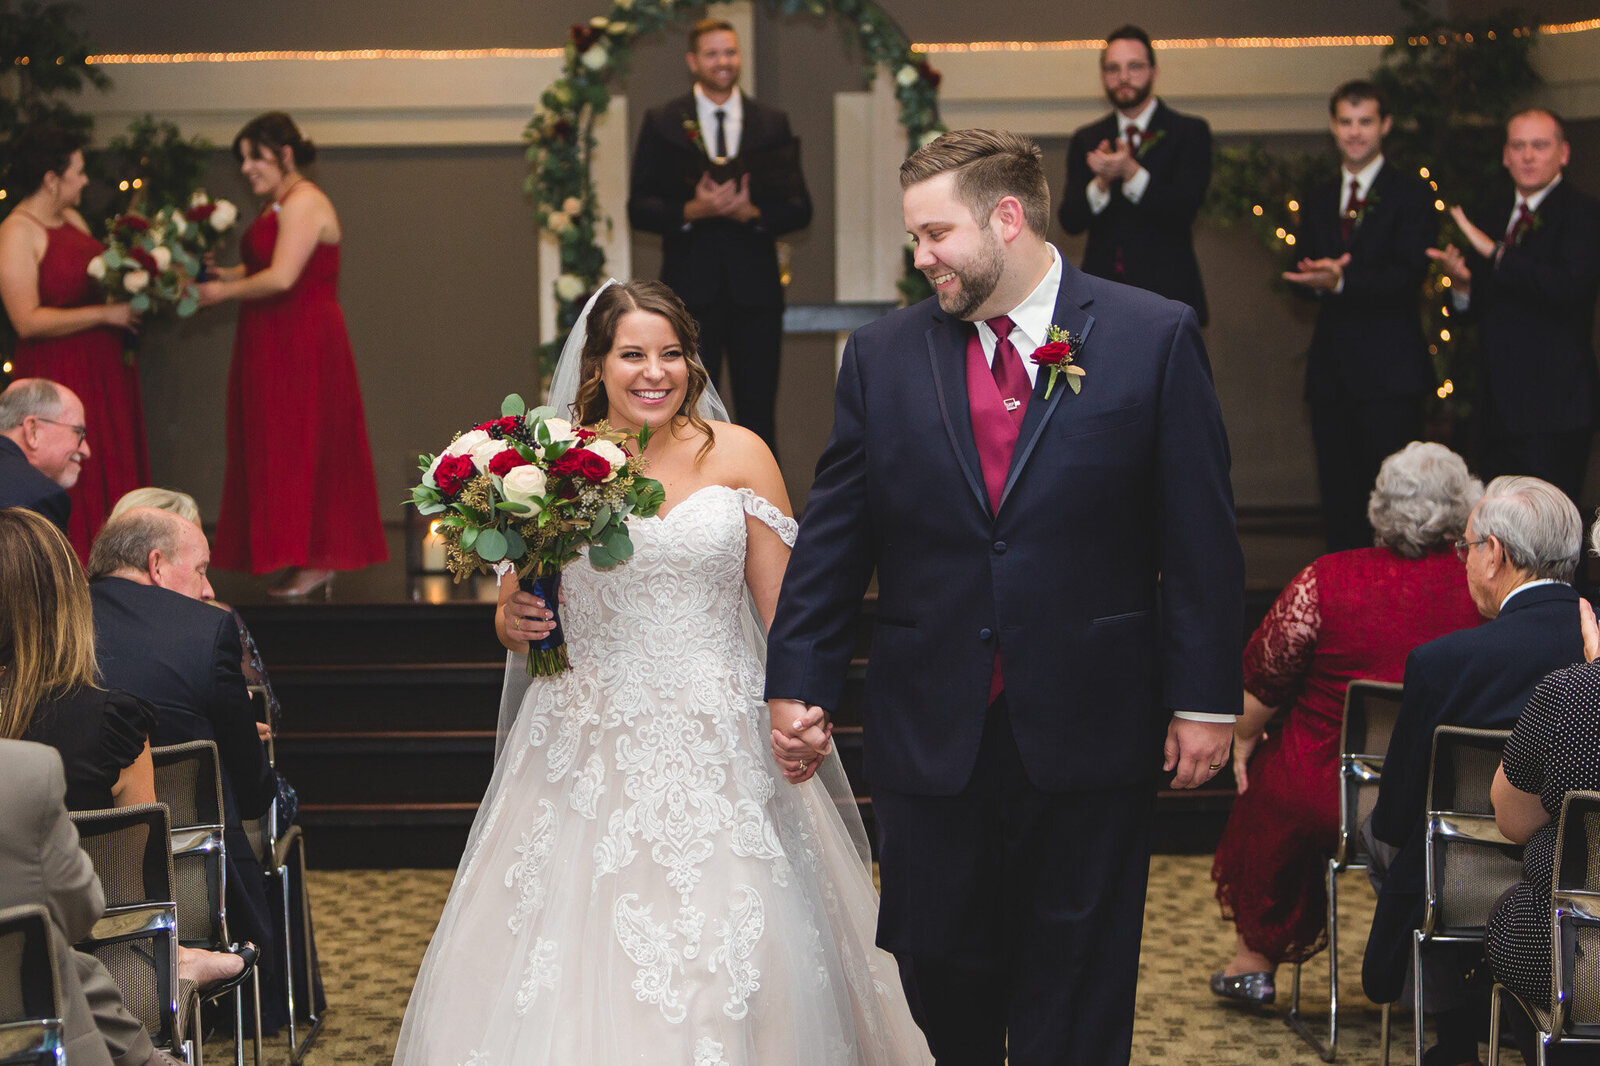 wedding day recessional vineyard columbus ohio bride and groom